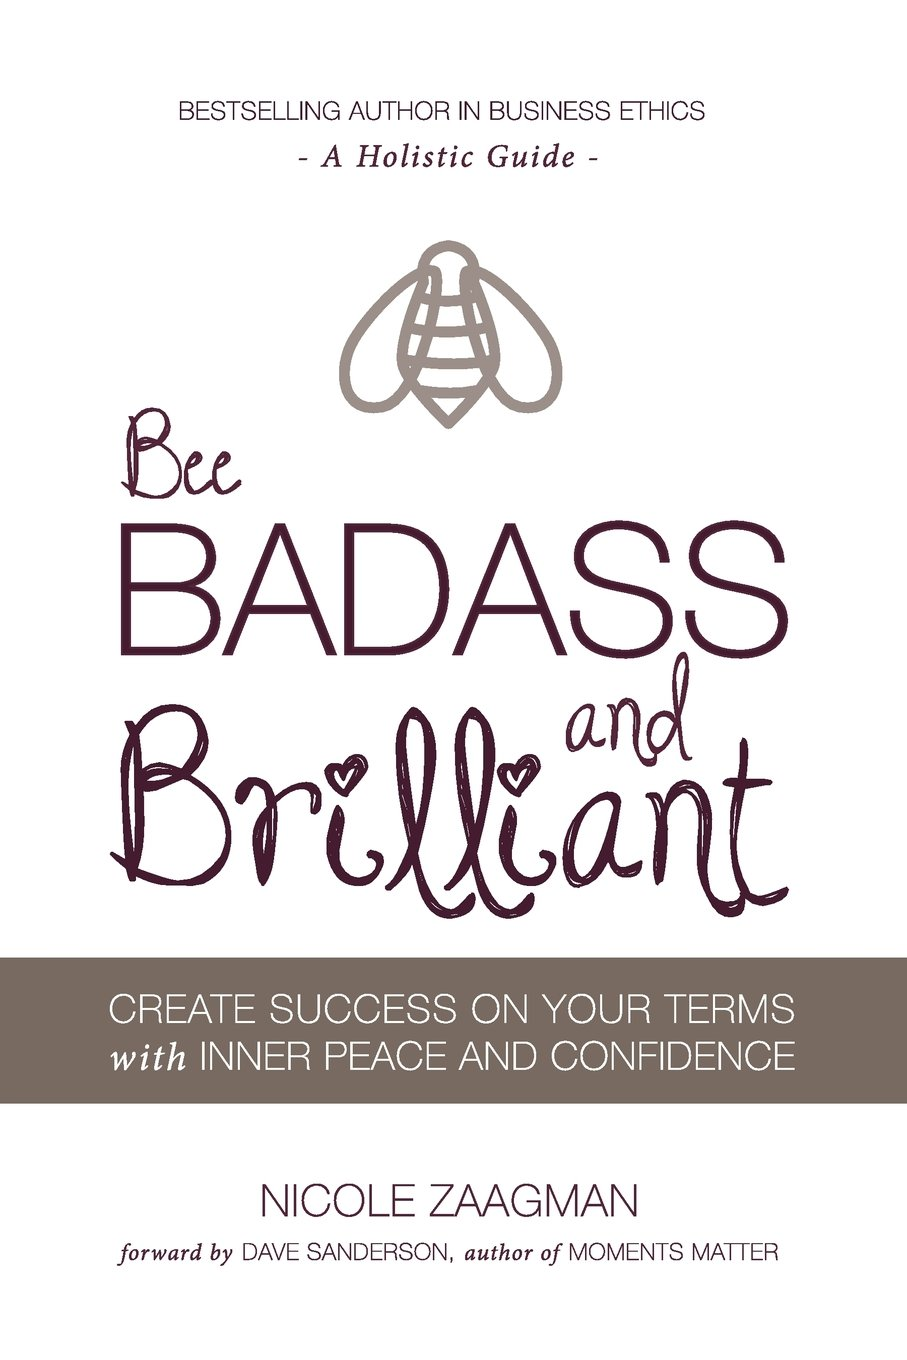 Bee BADASS and Brilliant: A Holistic Guide to Create Success on Your Terms with Inner Peace and Confidence pdf